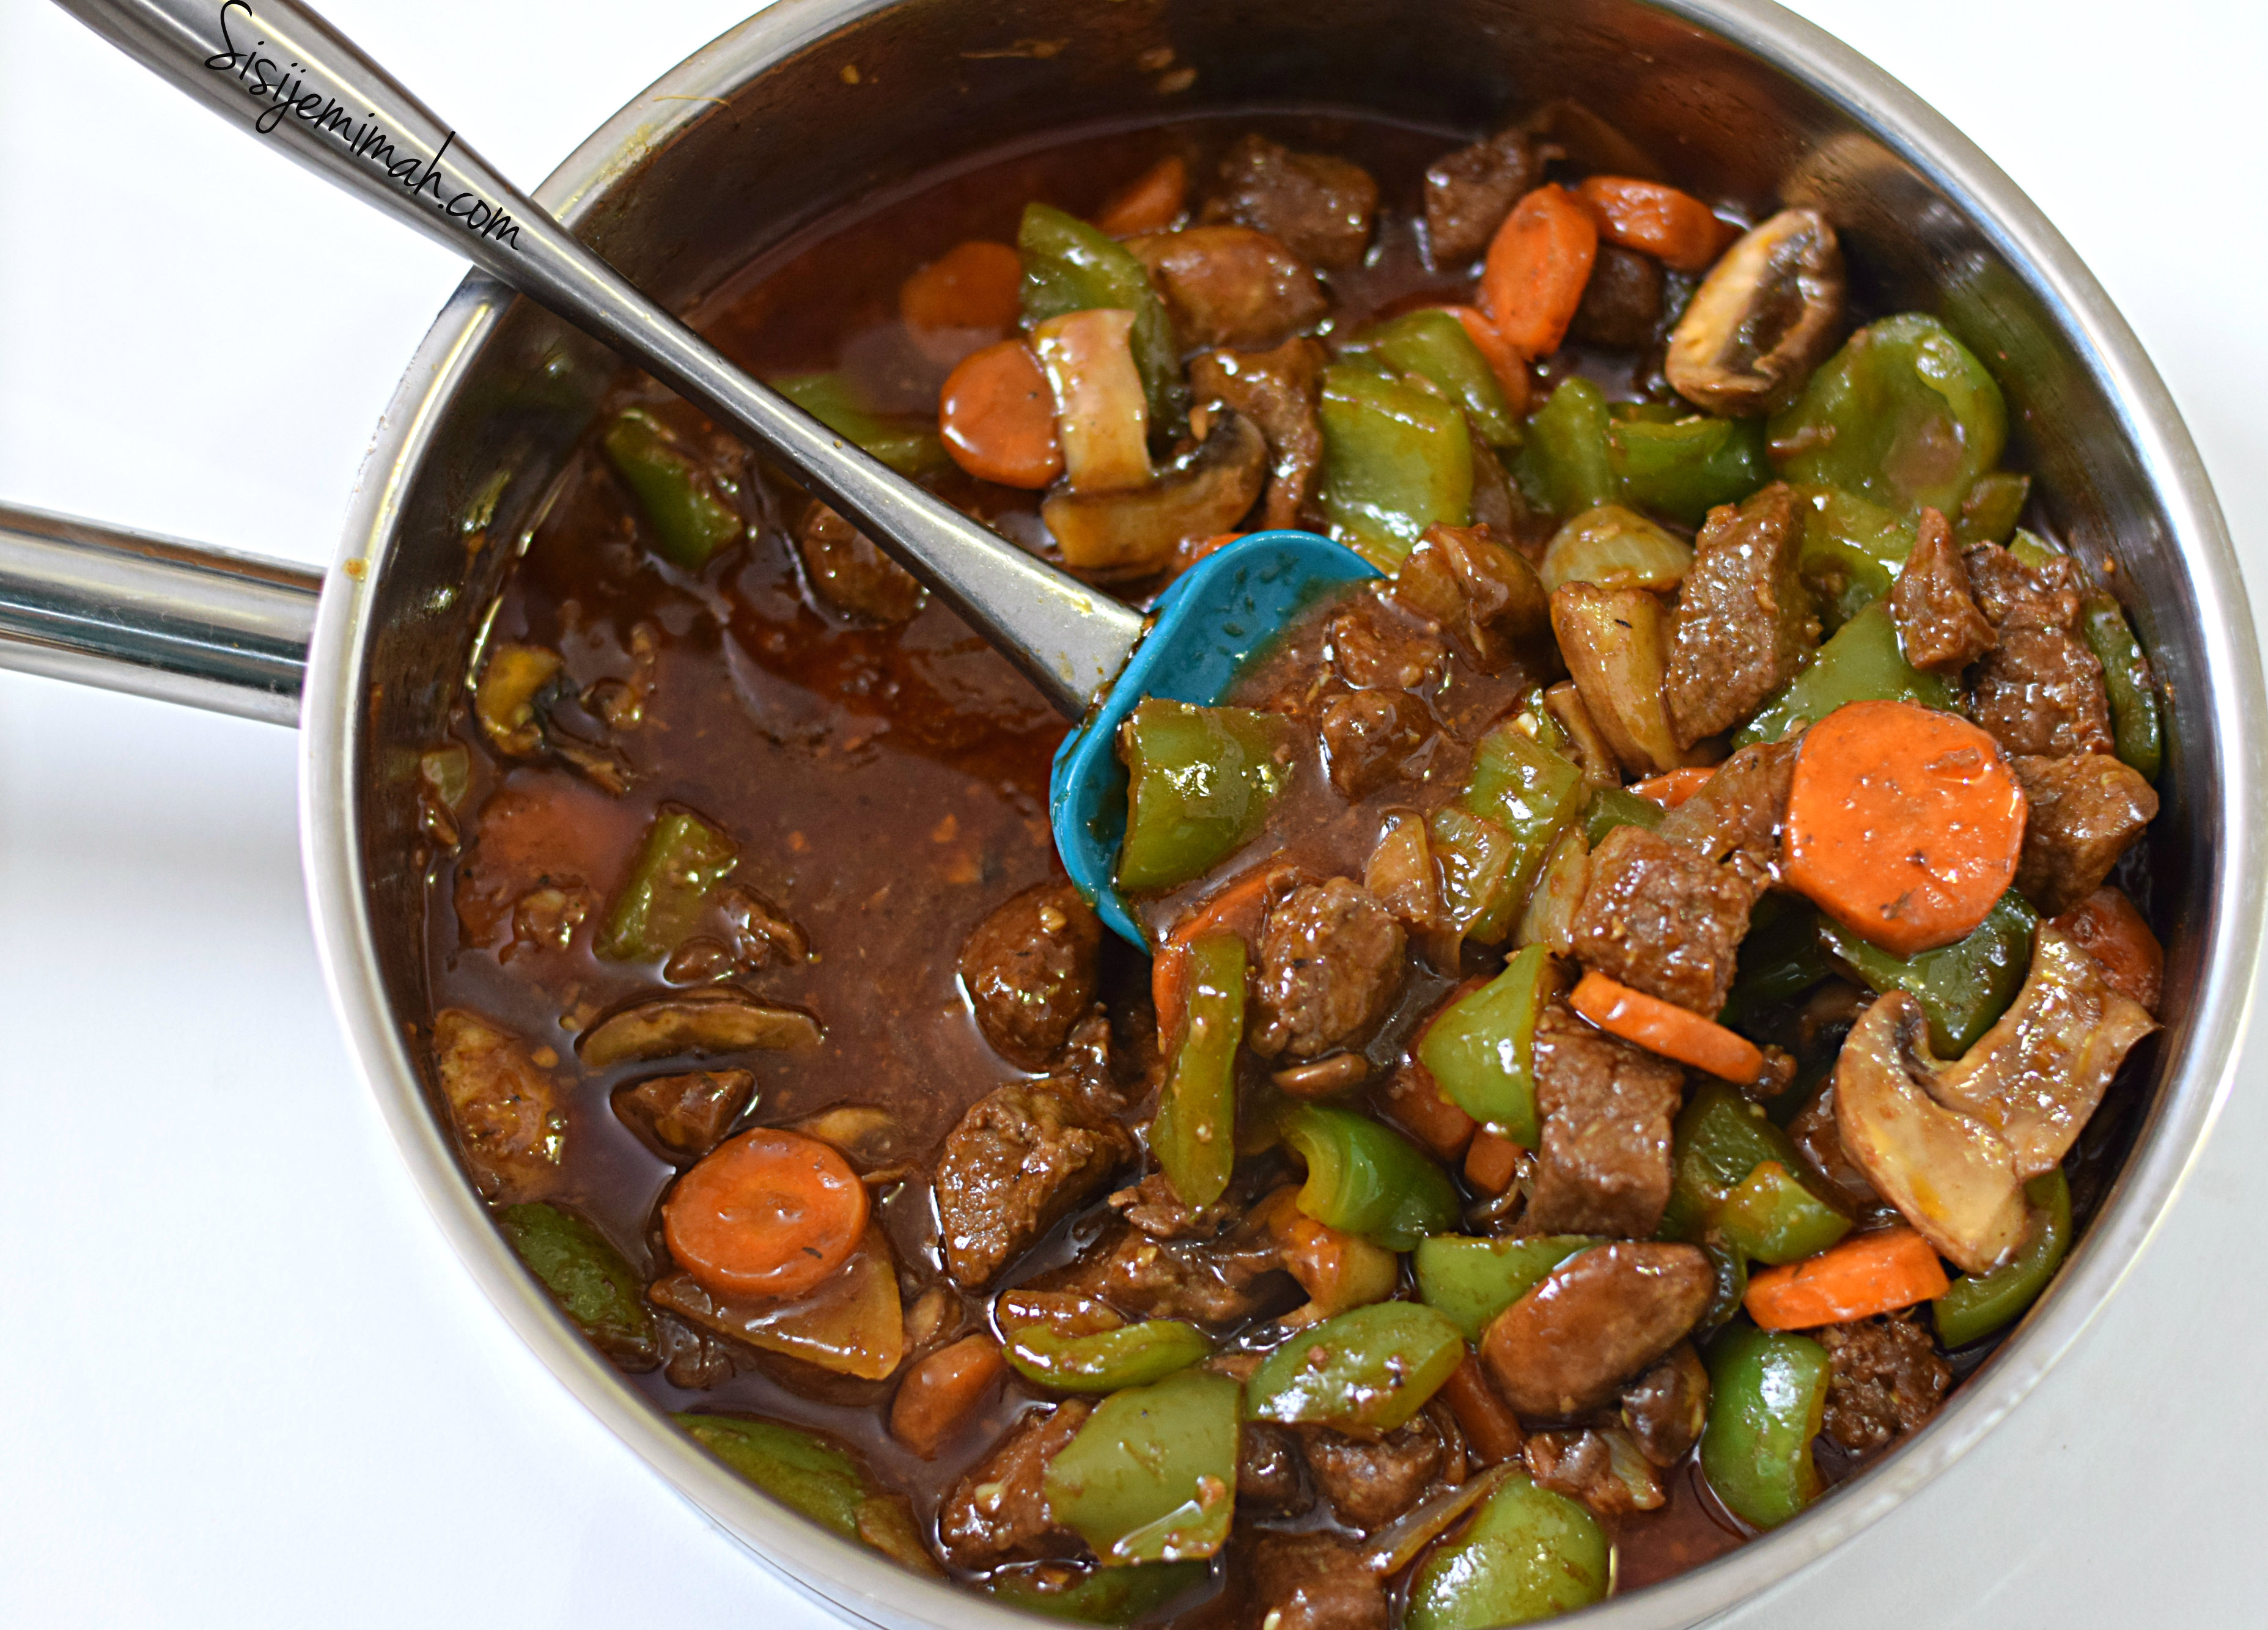 Beef And Green Pepper Stir Fry Beef Sauce Sisi Jemimah